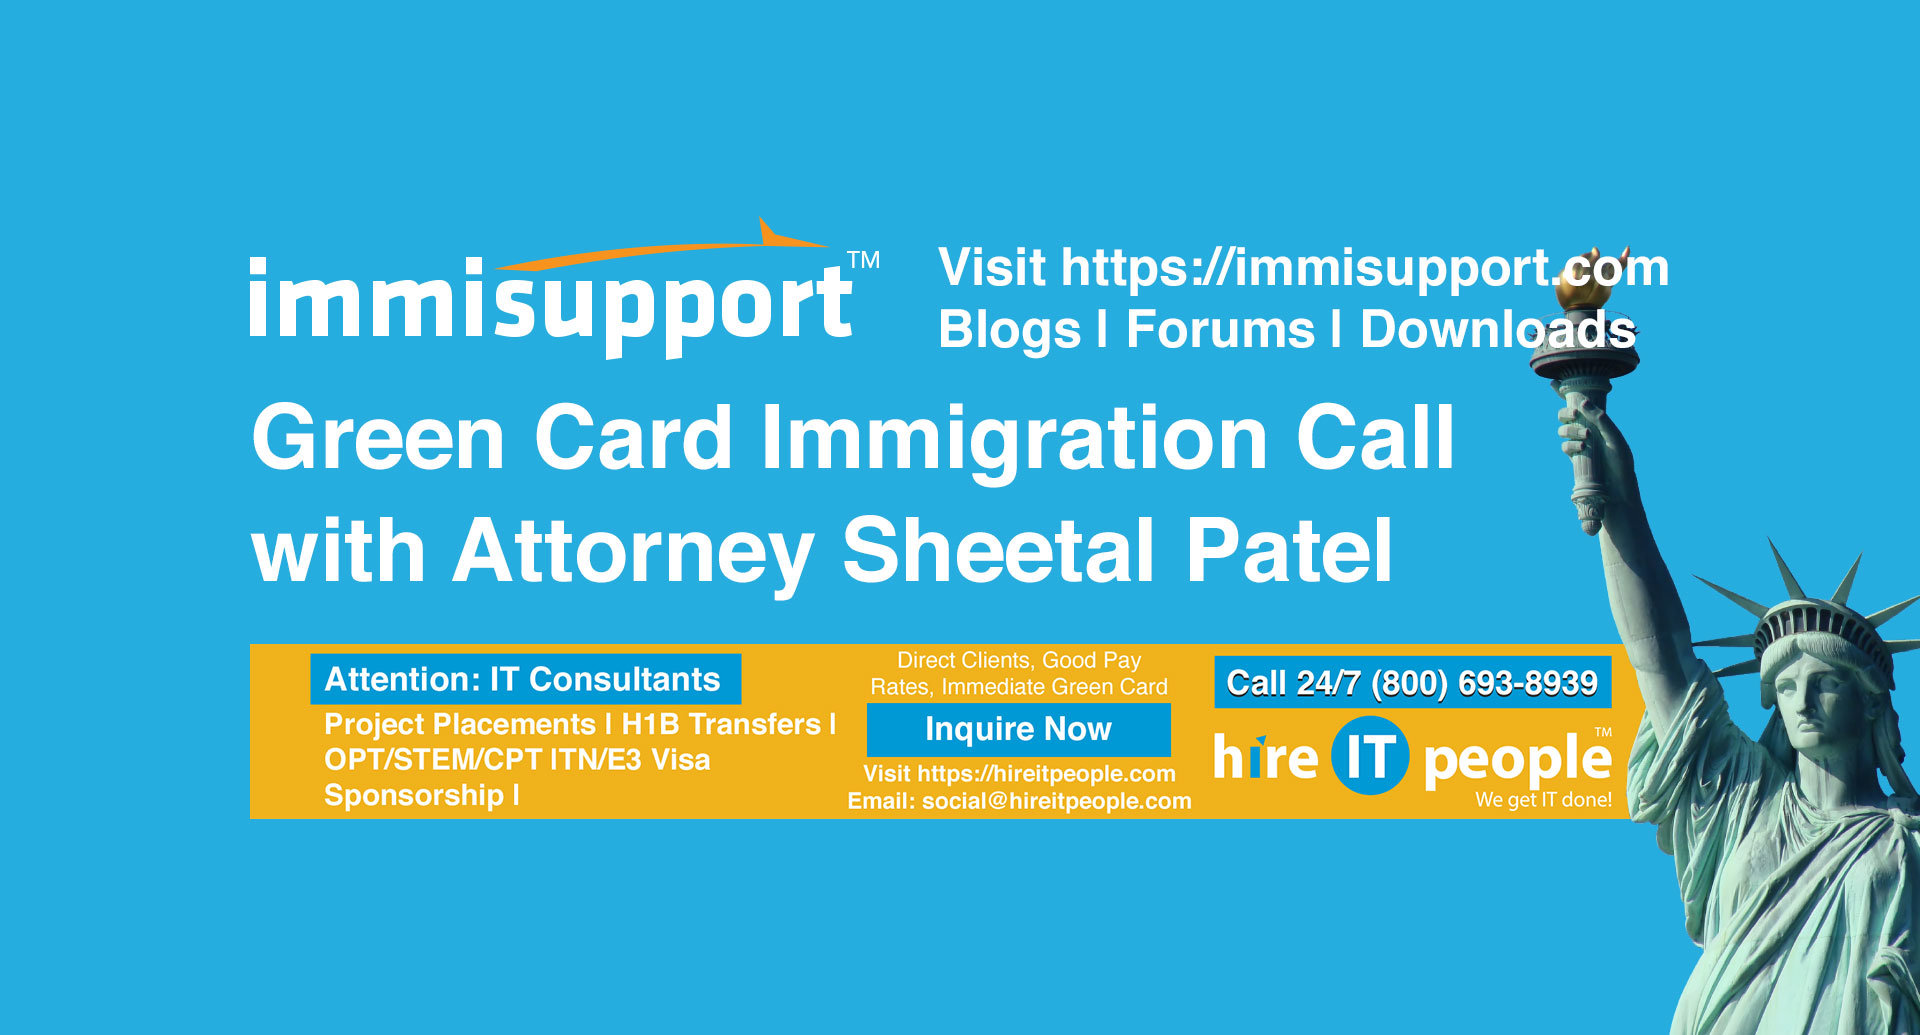 Green Card Immigration Call with Attorney Sheetal Patel